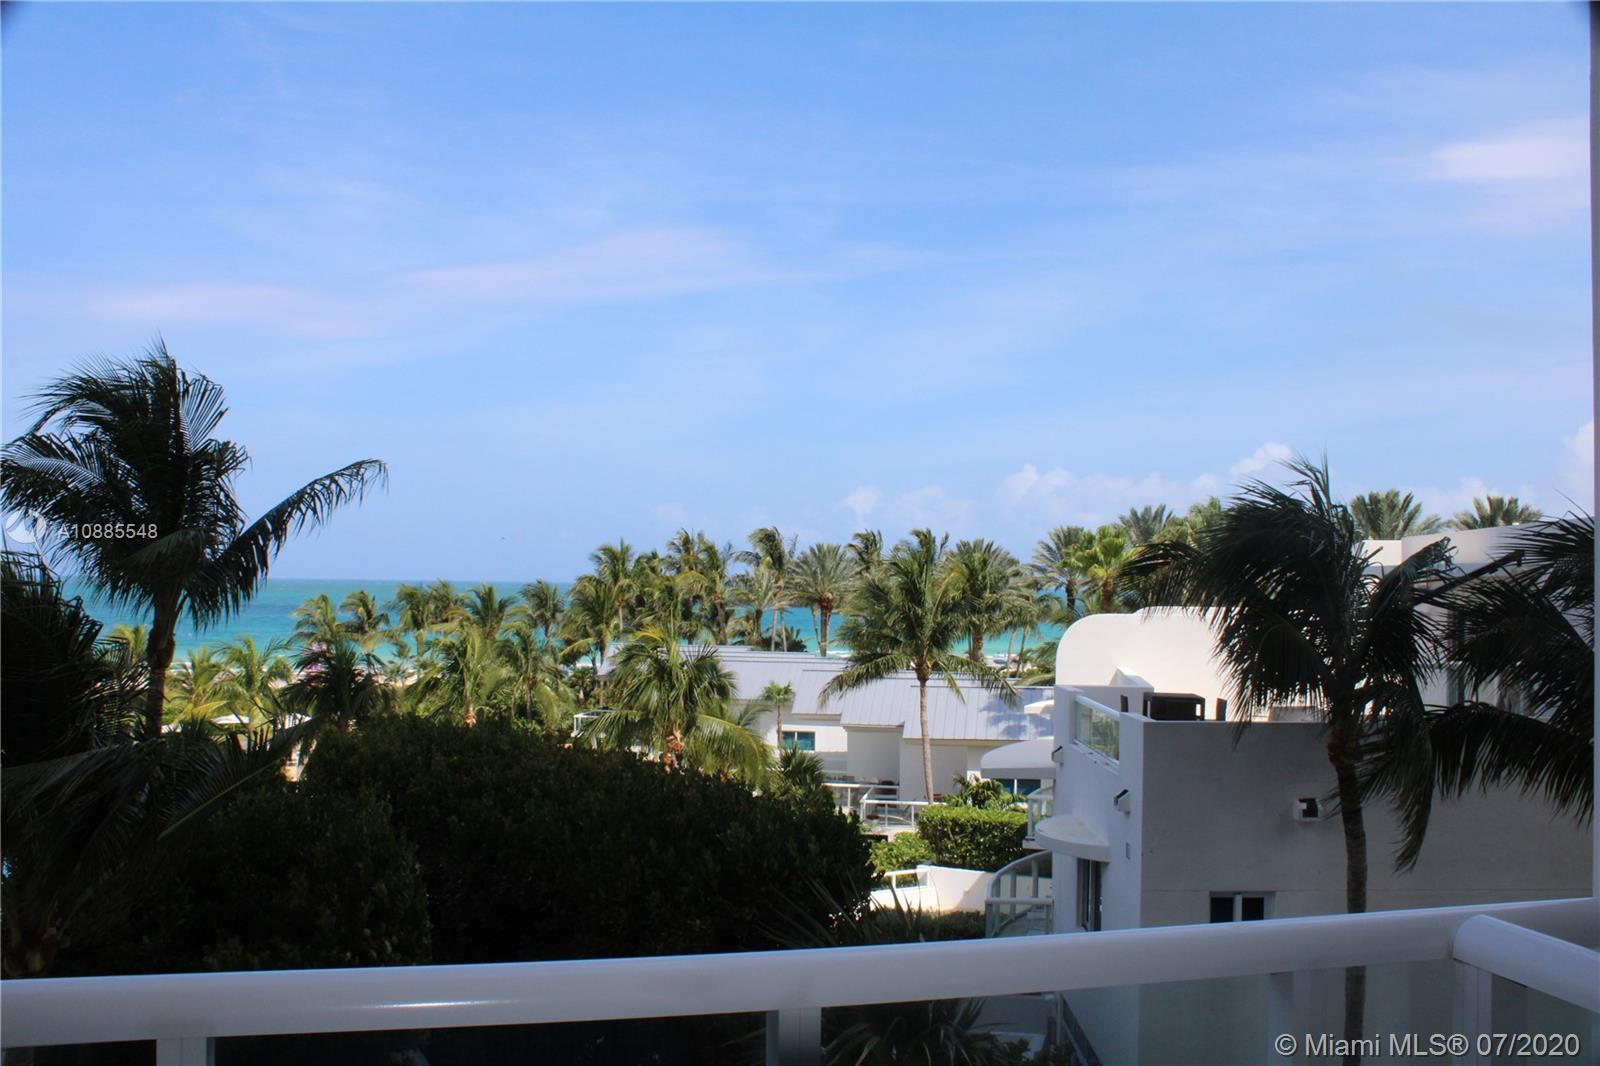 Gorgeous open floor plan 2 bed 2 bathroom in the exclusive Continuum on South Beach North Tower. Mar